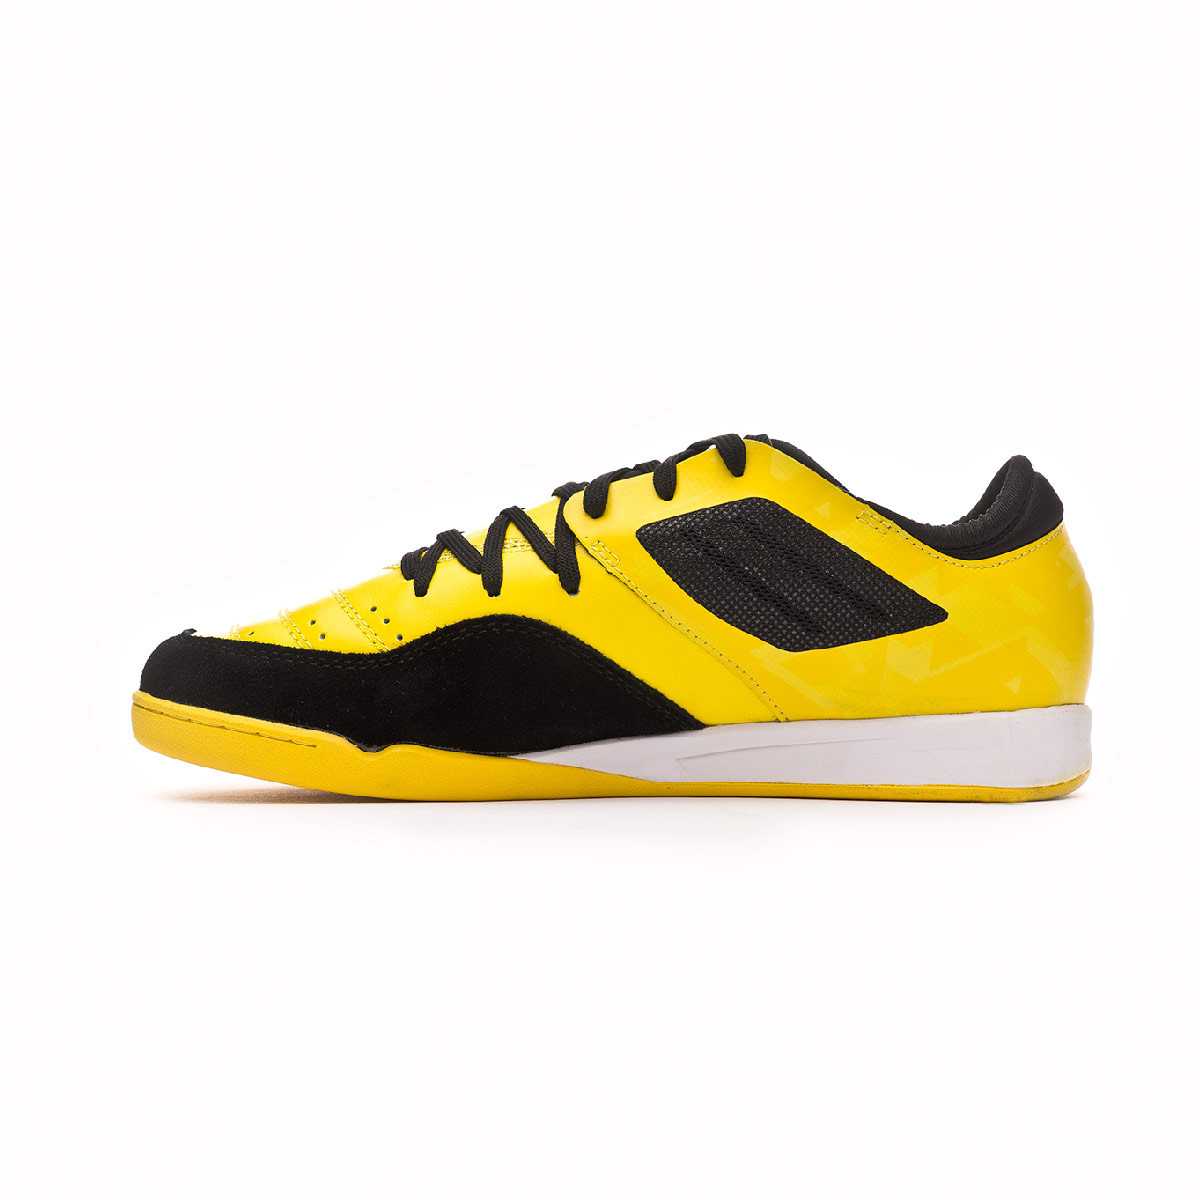 7332be7ed14 Click to enlarge image  umbro_chaleira_pro_ic_blazing_yellow_black_white_1.jpg ...